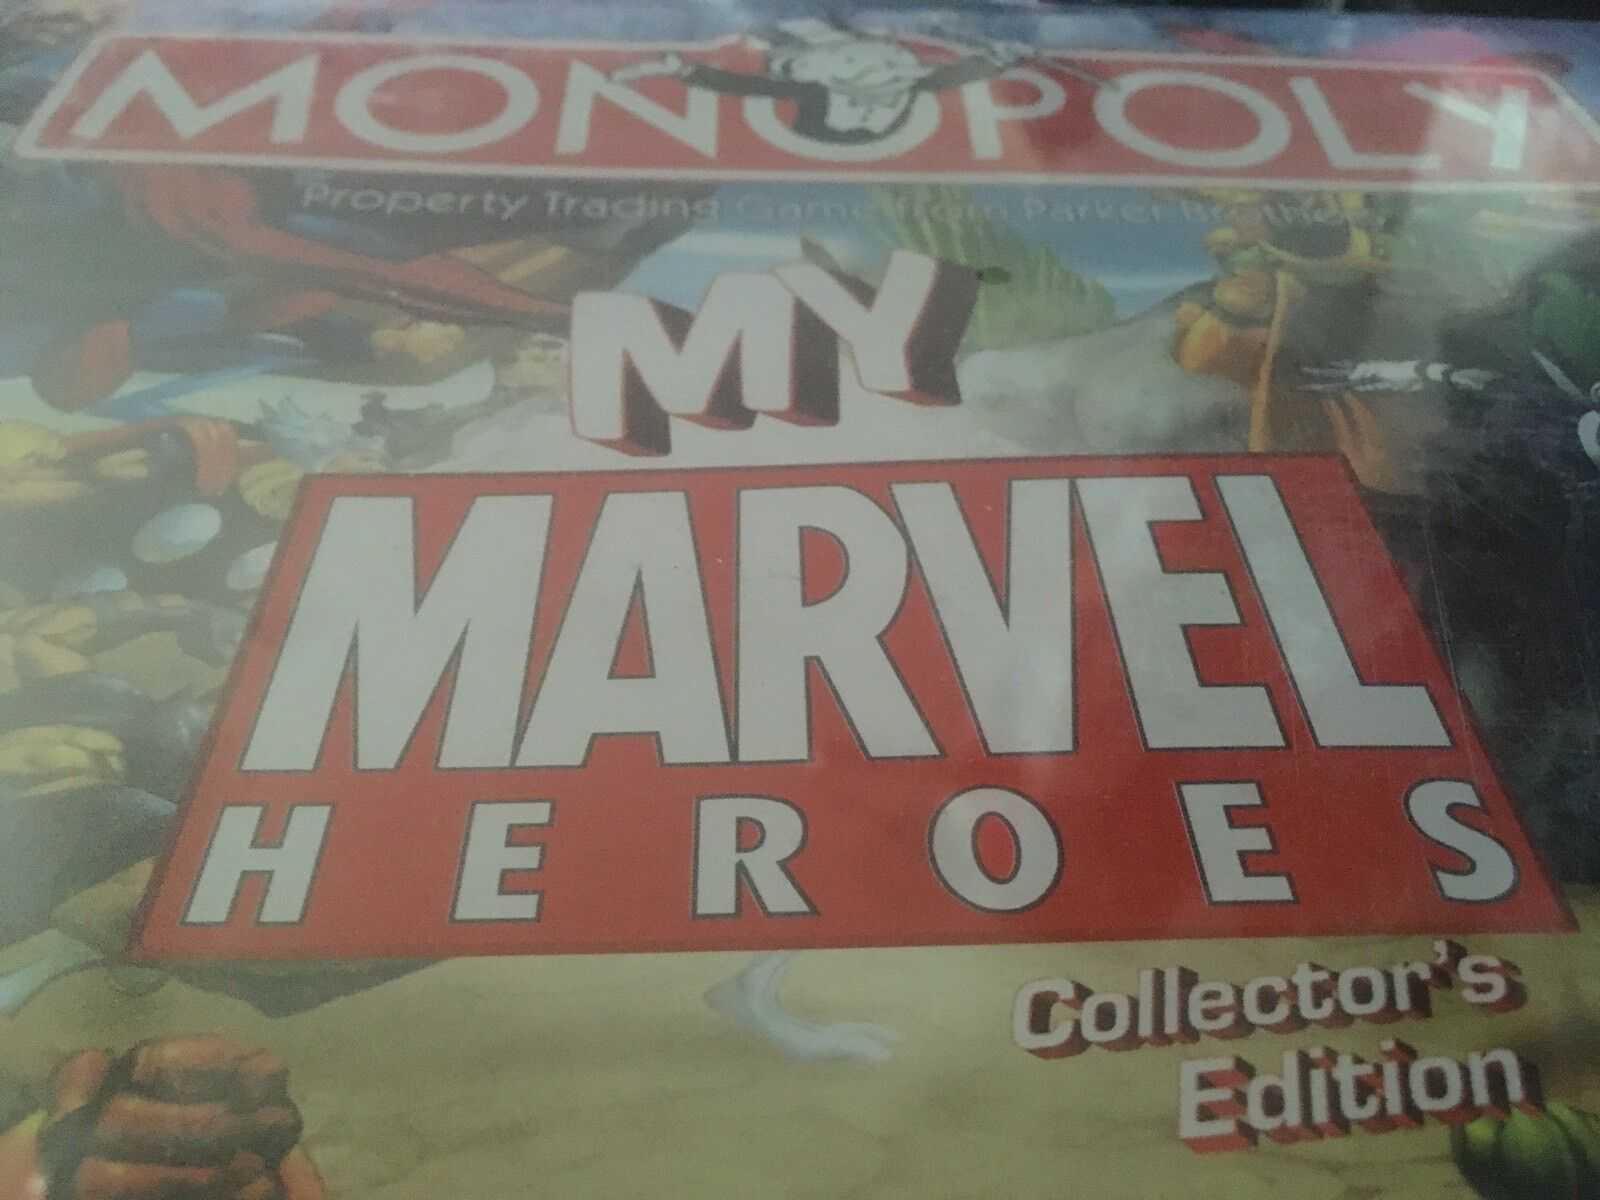 'THE MY MARVEL HEROES COLLECTORS EDITION' MONOPOLY GAME  NEVER OPENED